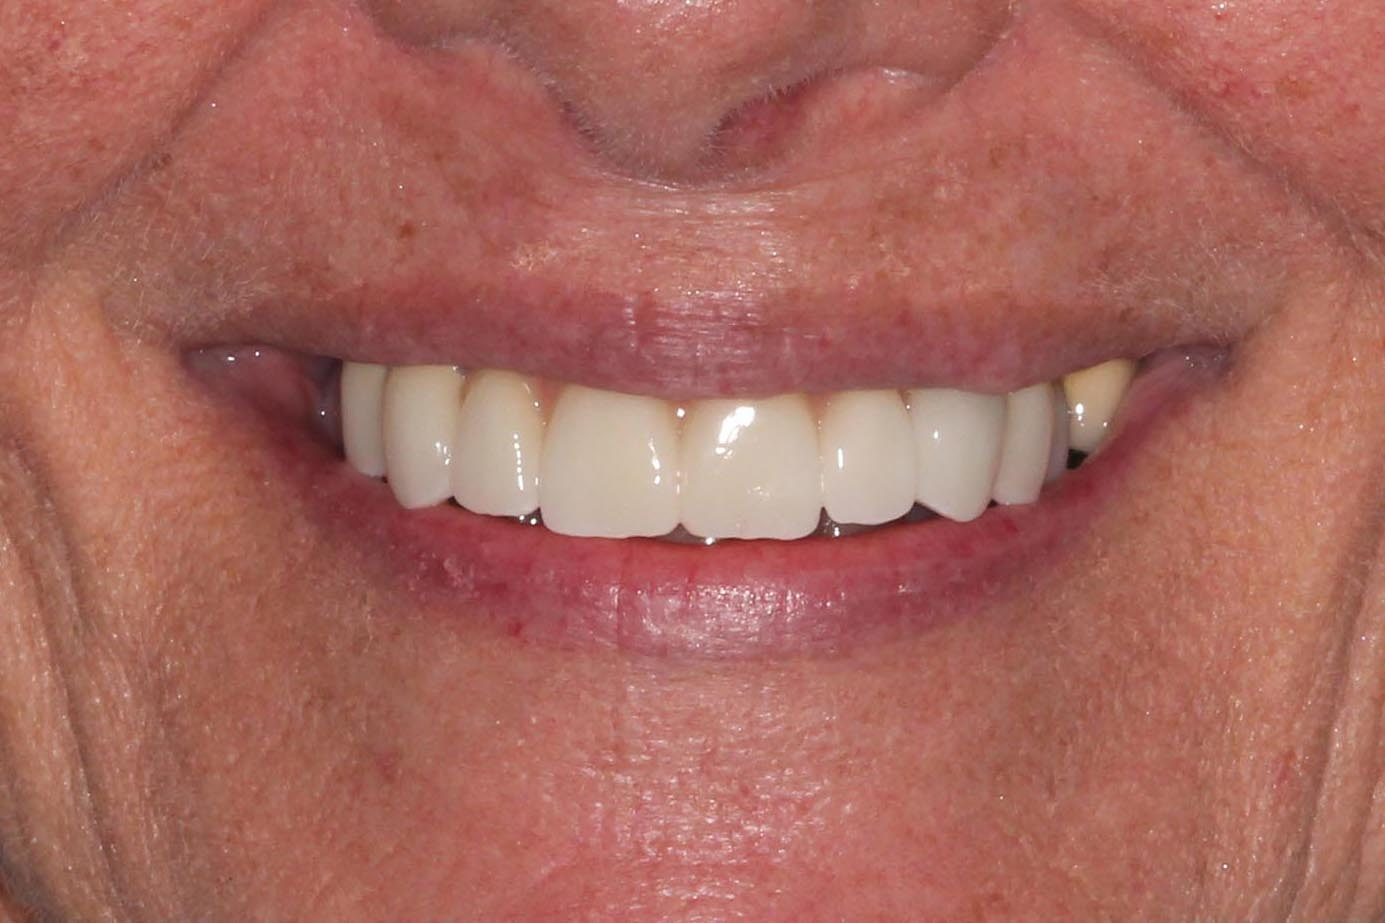 Applied limited care, esthetics to teeth